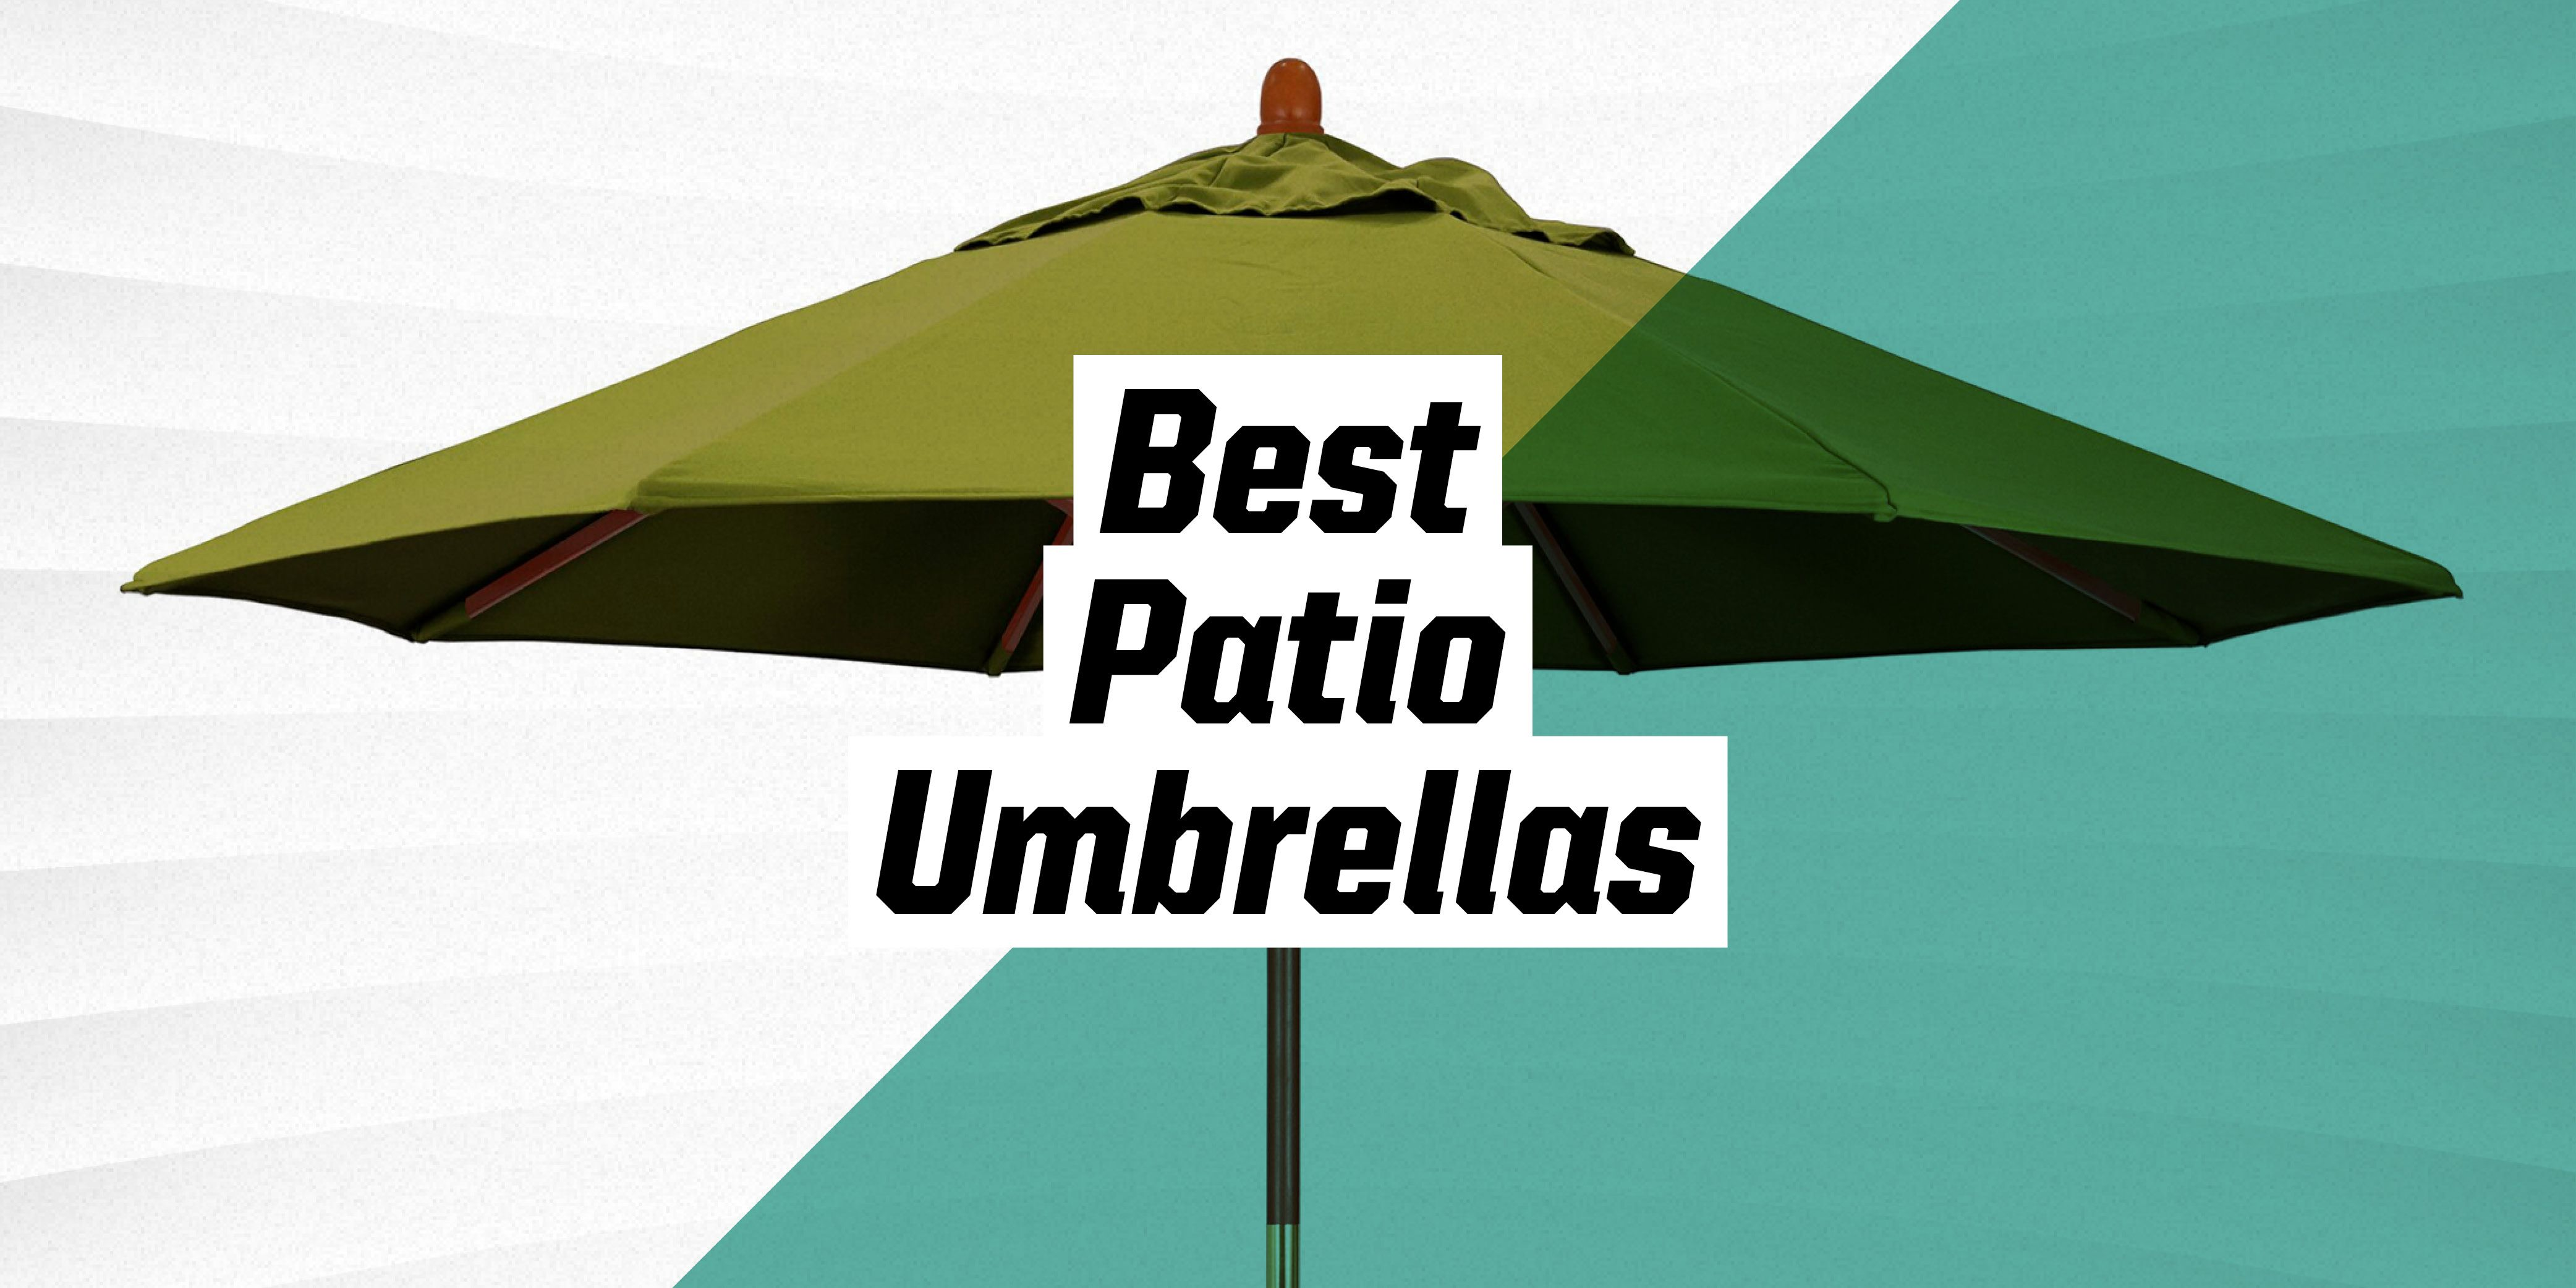 The 10 Best Patio Umbrellas for Your Outdoor Space